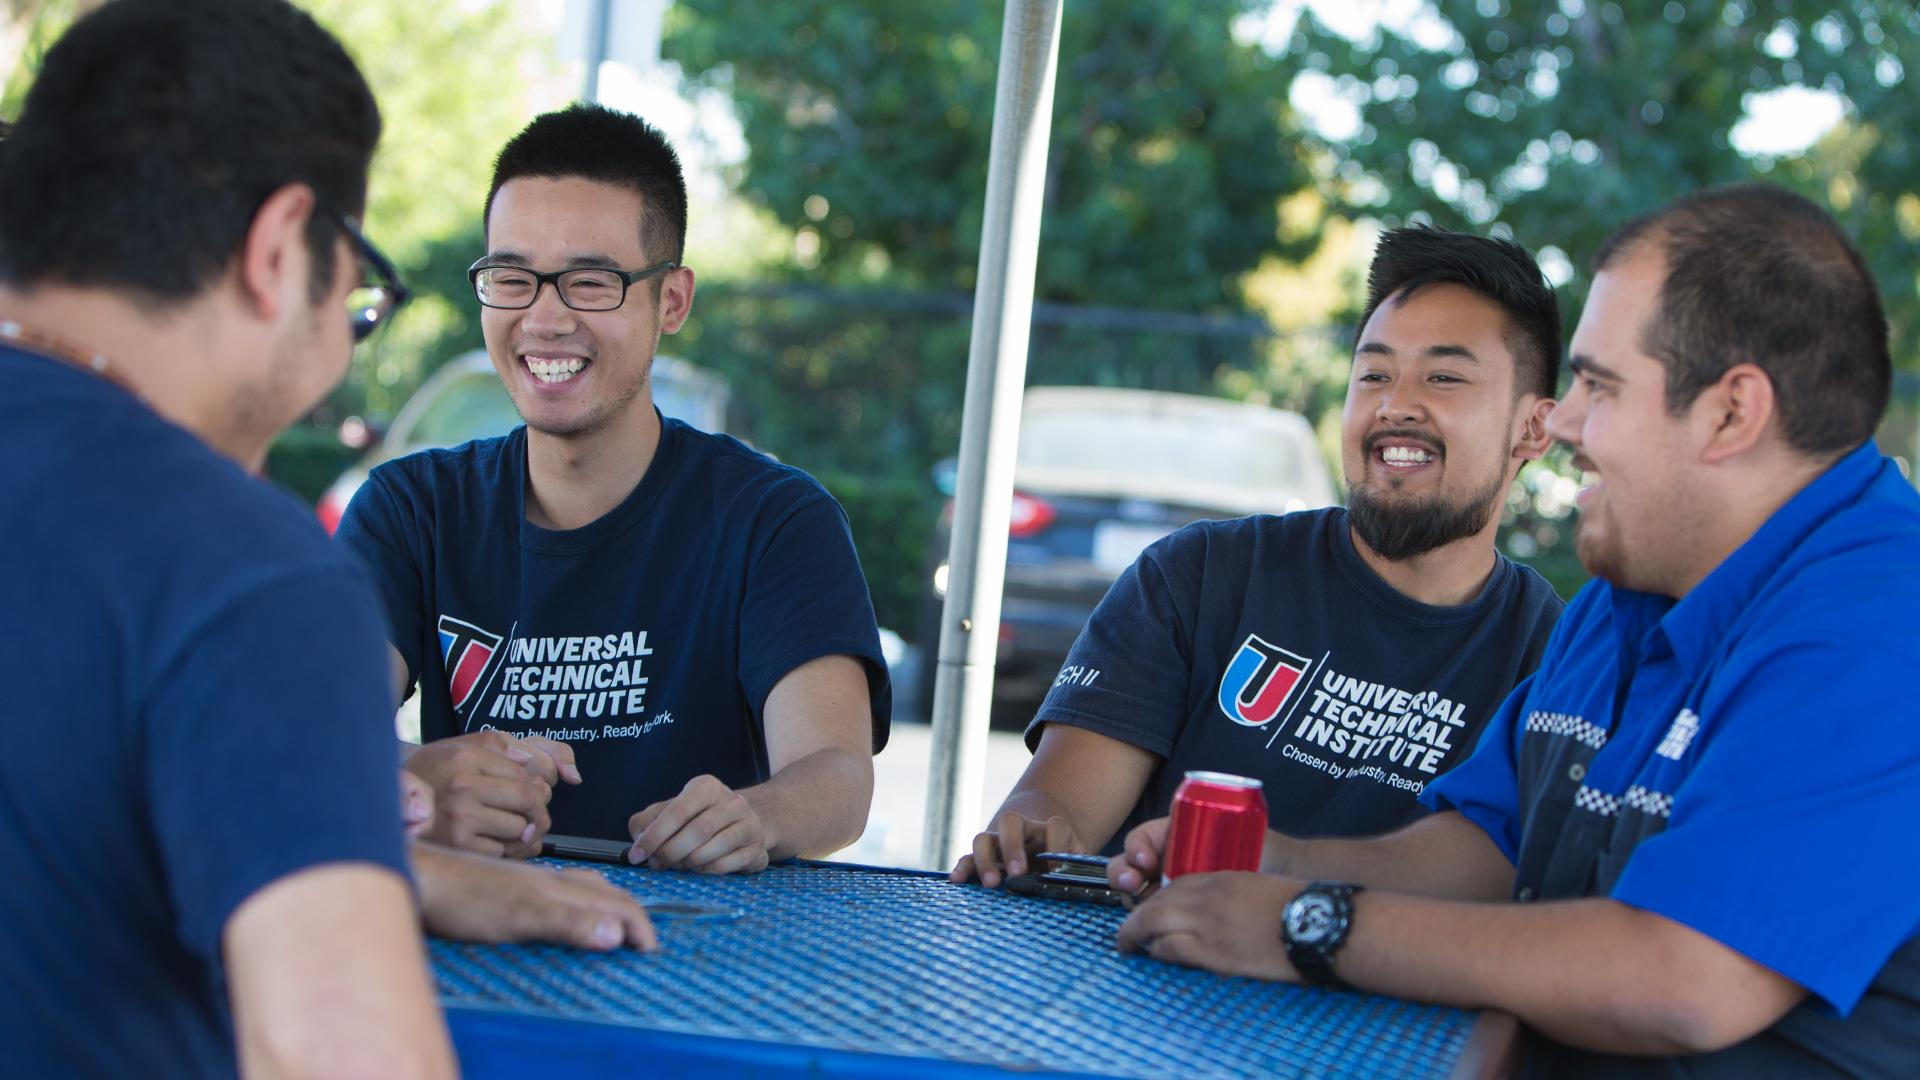 UTI students smiling on break at a blue table